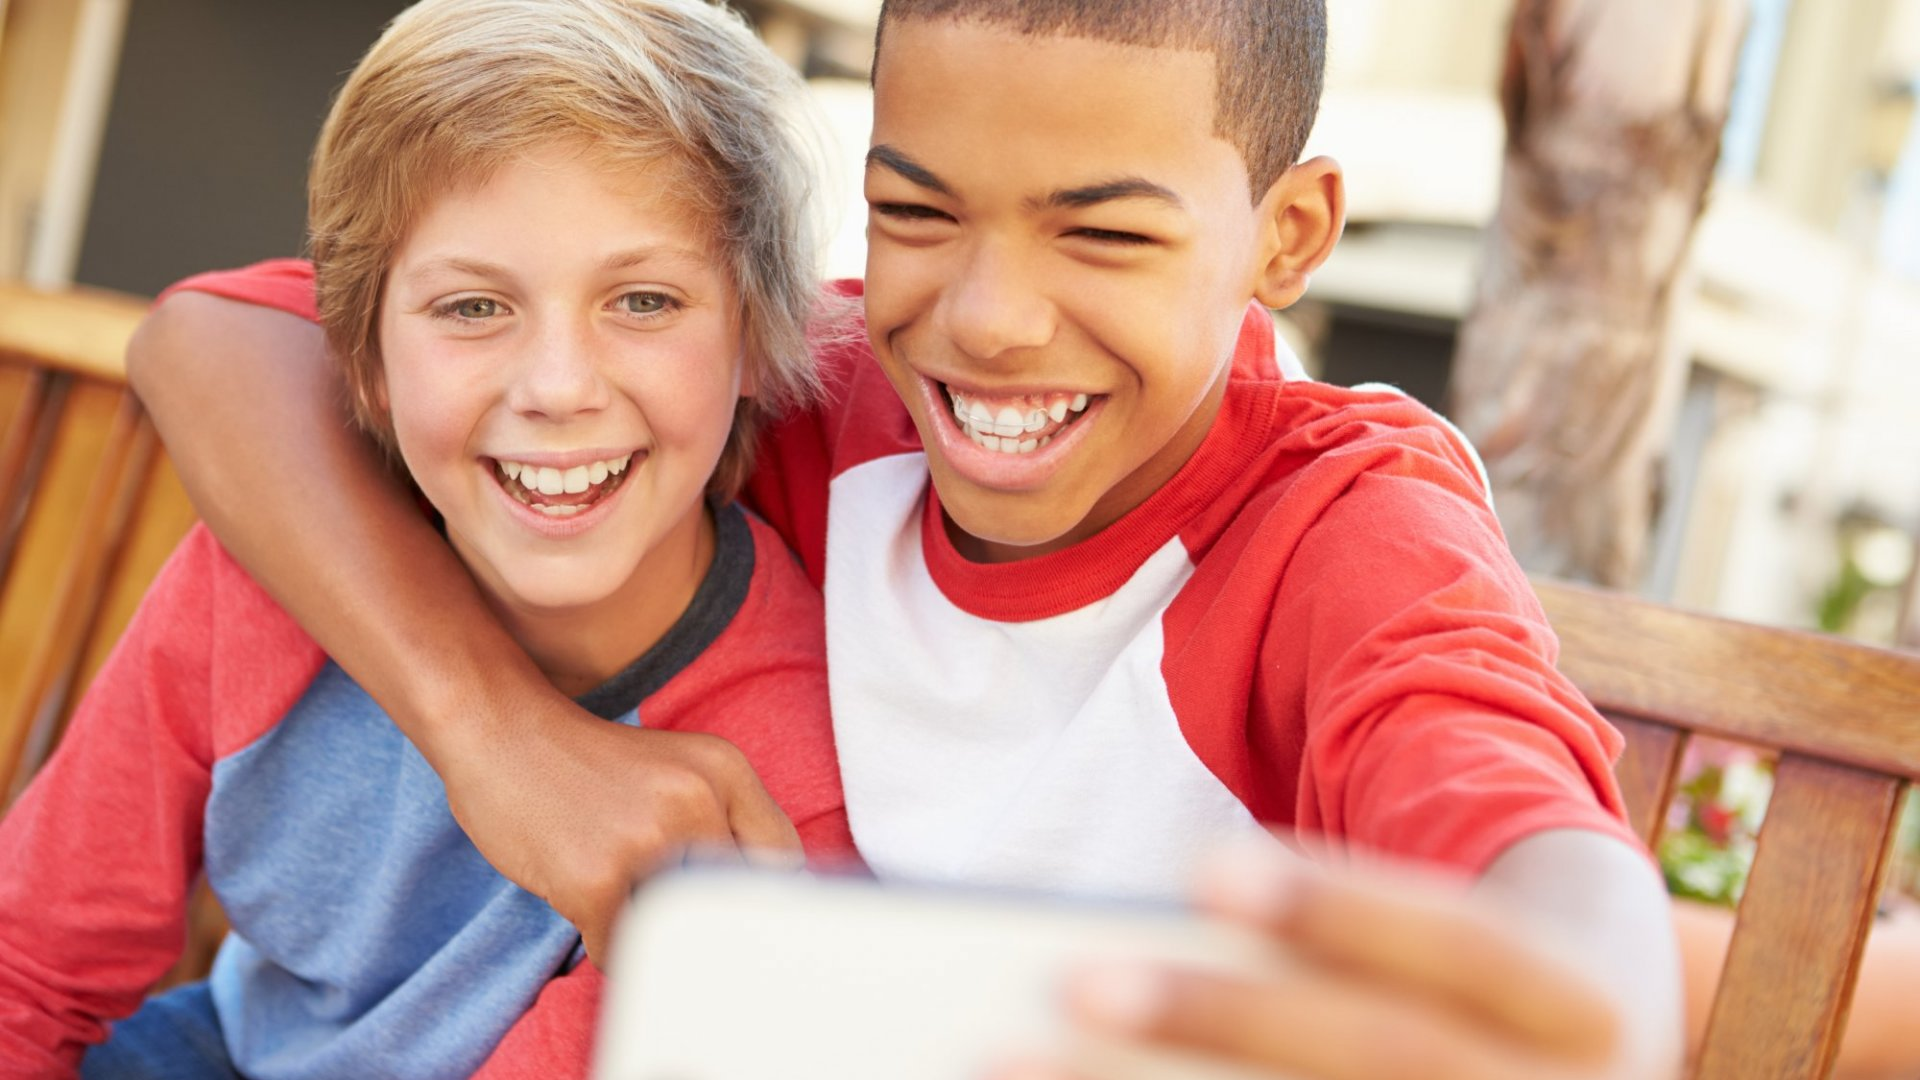 Want Your Kid to Grow up Happy and Healthy? Encourage This Type of Friendship, Science Says